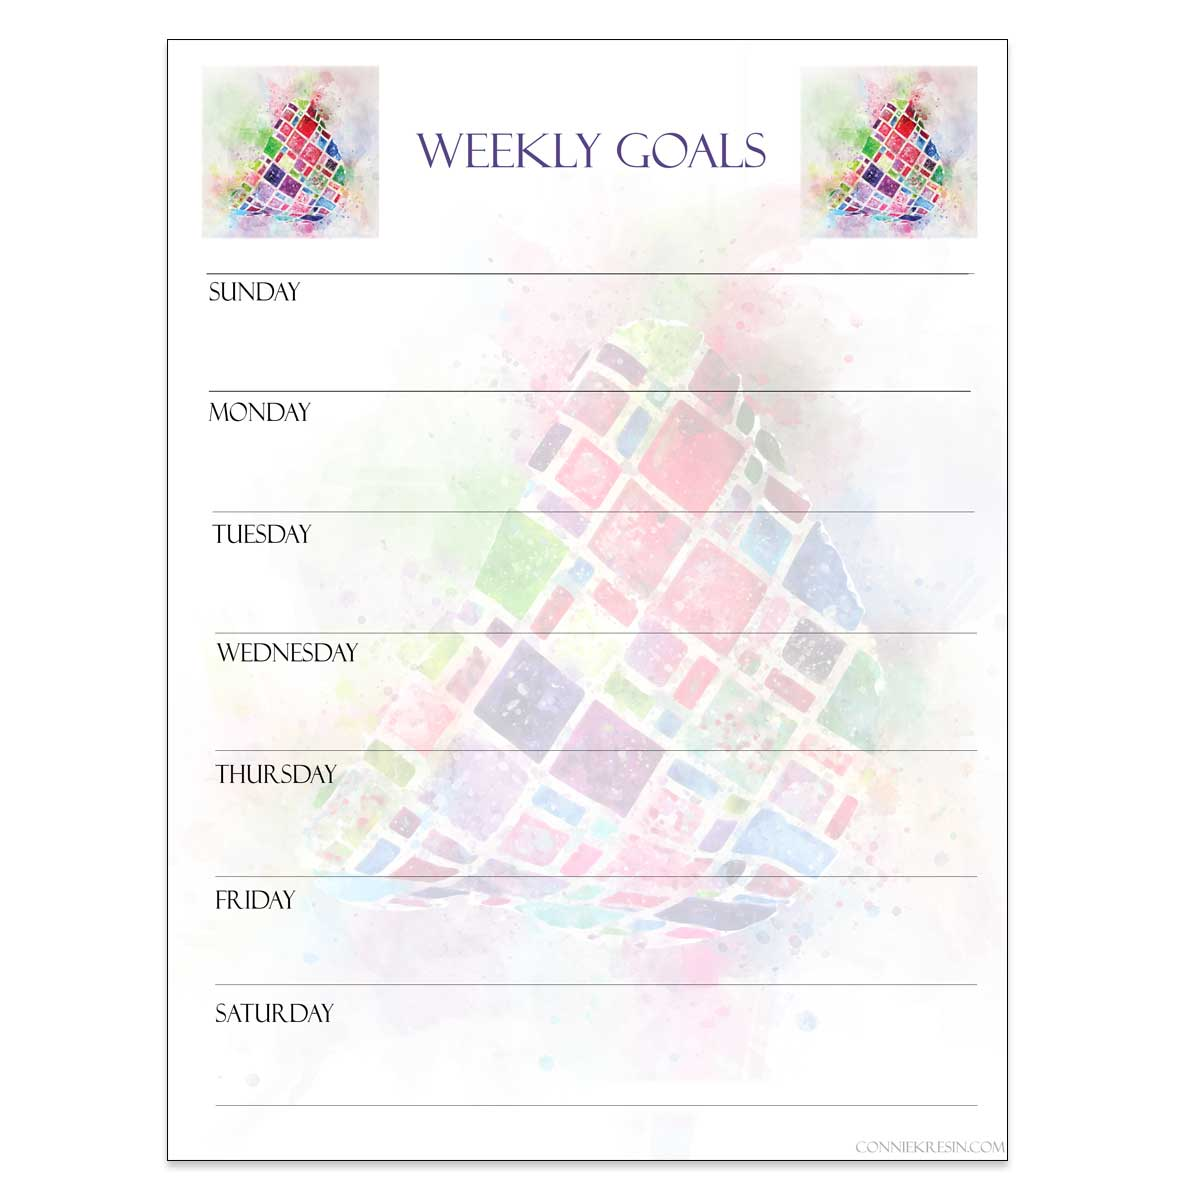 Weekly Goals printable starting on Sunday